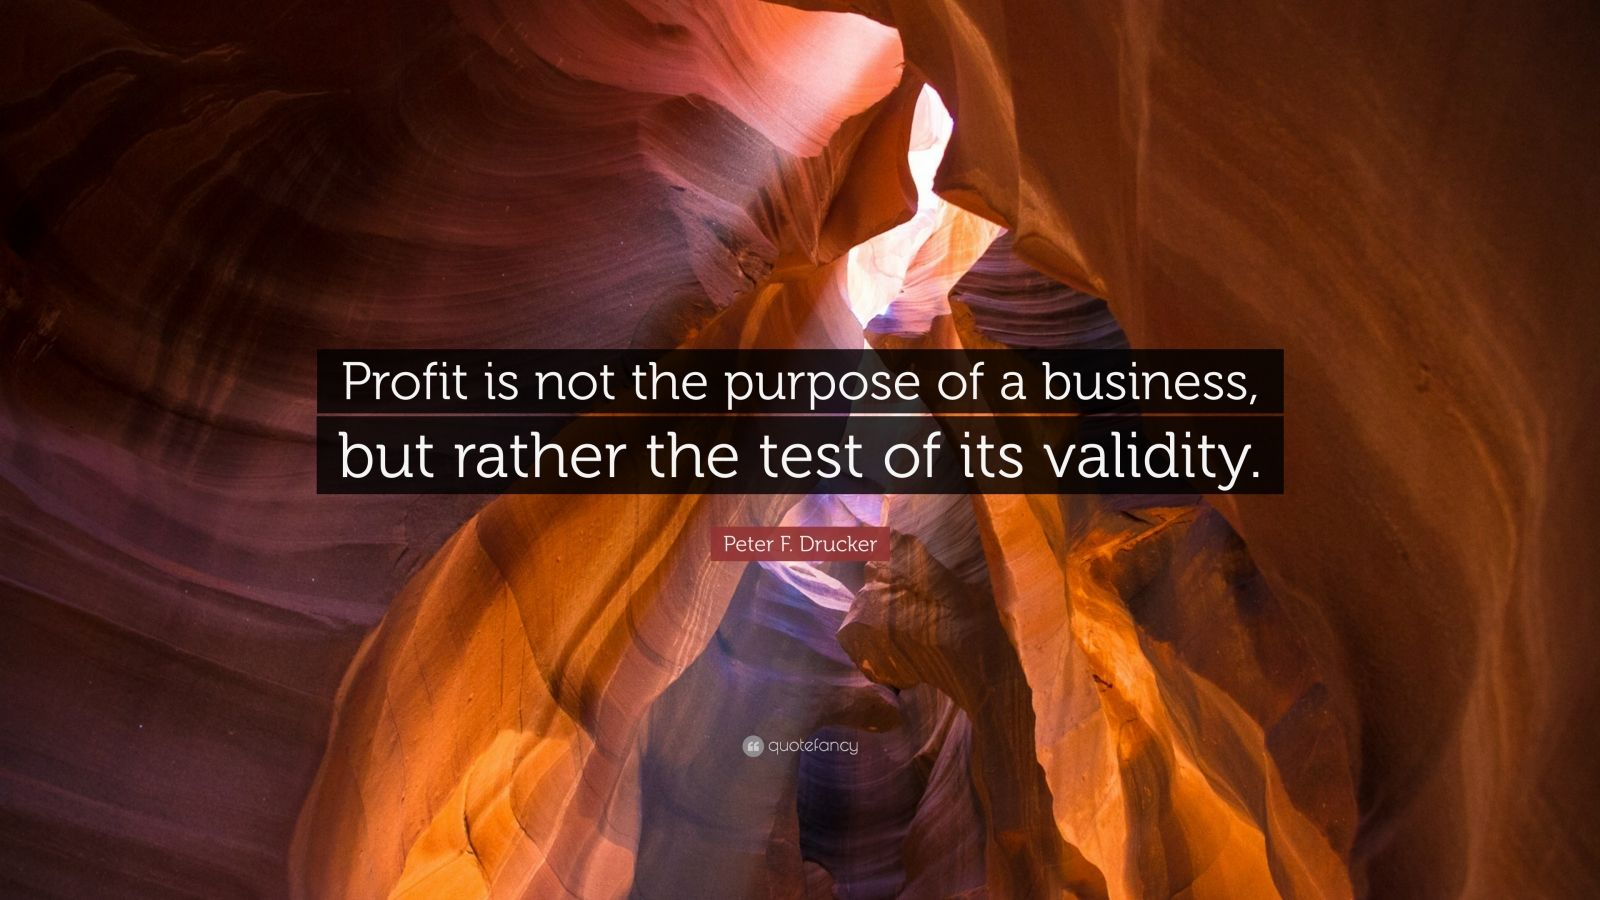 """Peter F. Drucker Quote: """"Profit is not the purpose of a business, but rather the test of its validity."""""""